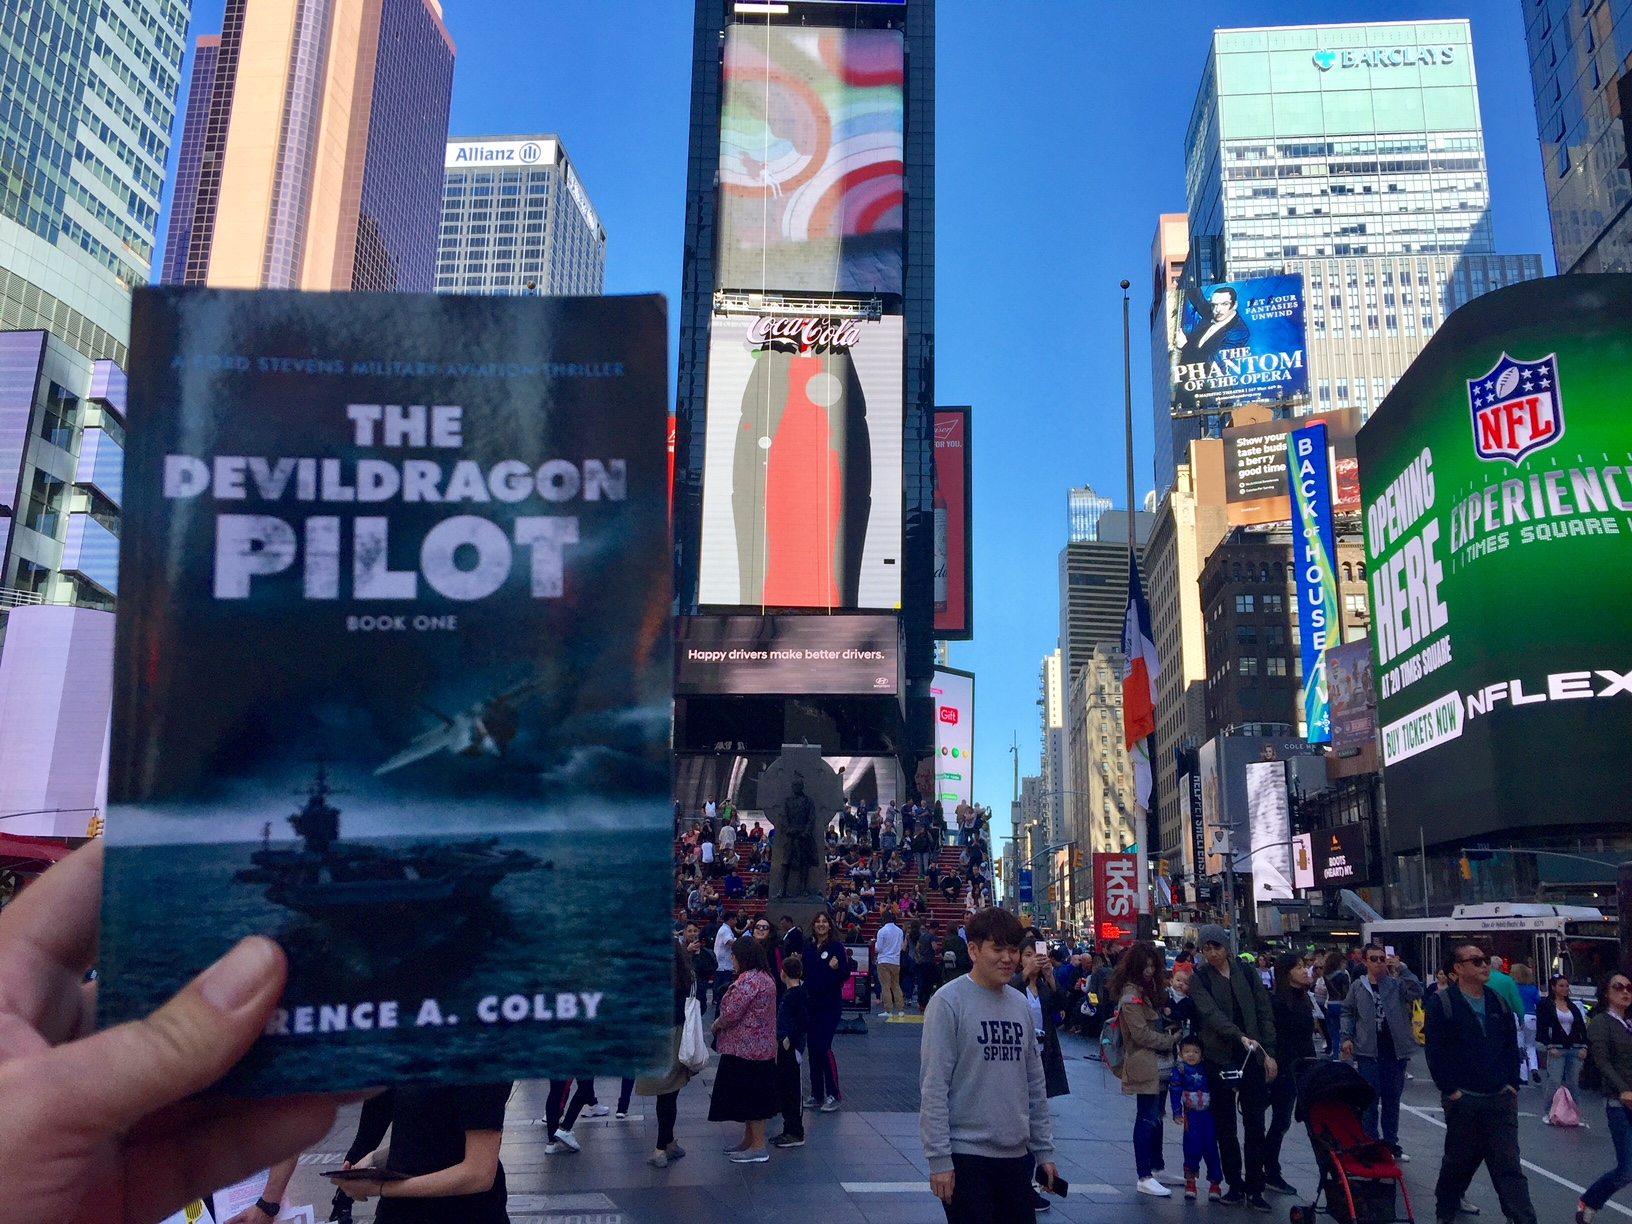 The Devil Dragon Pilot makes it to New York City!